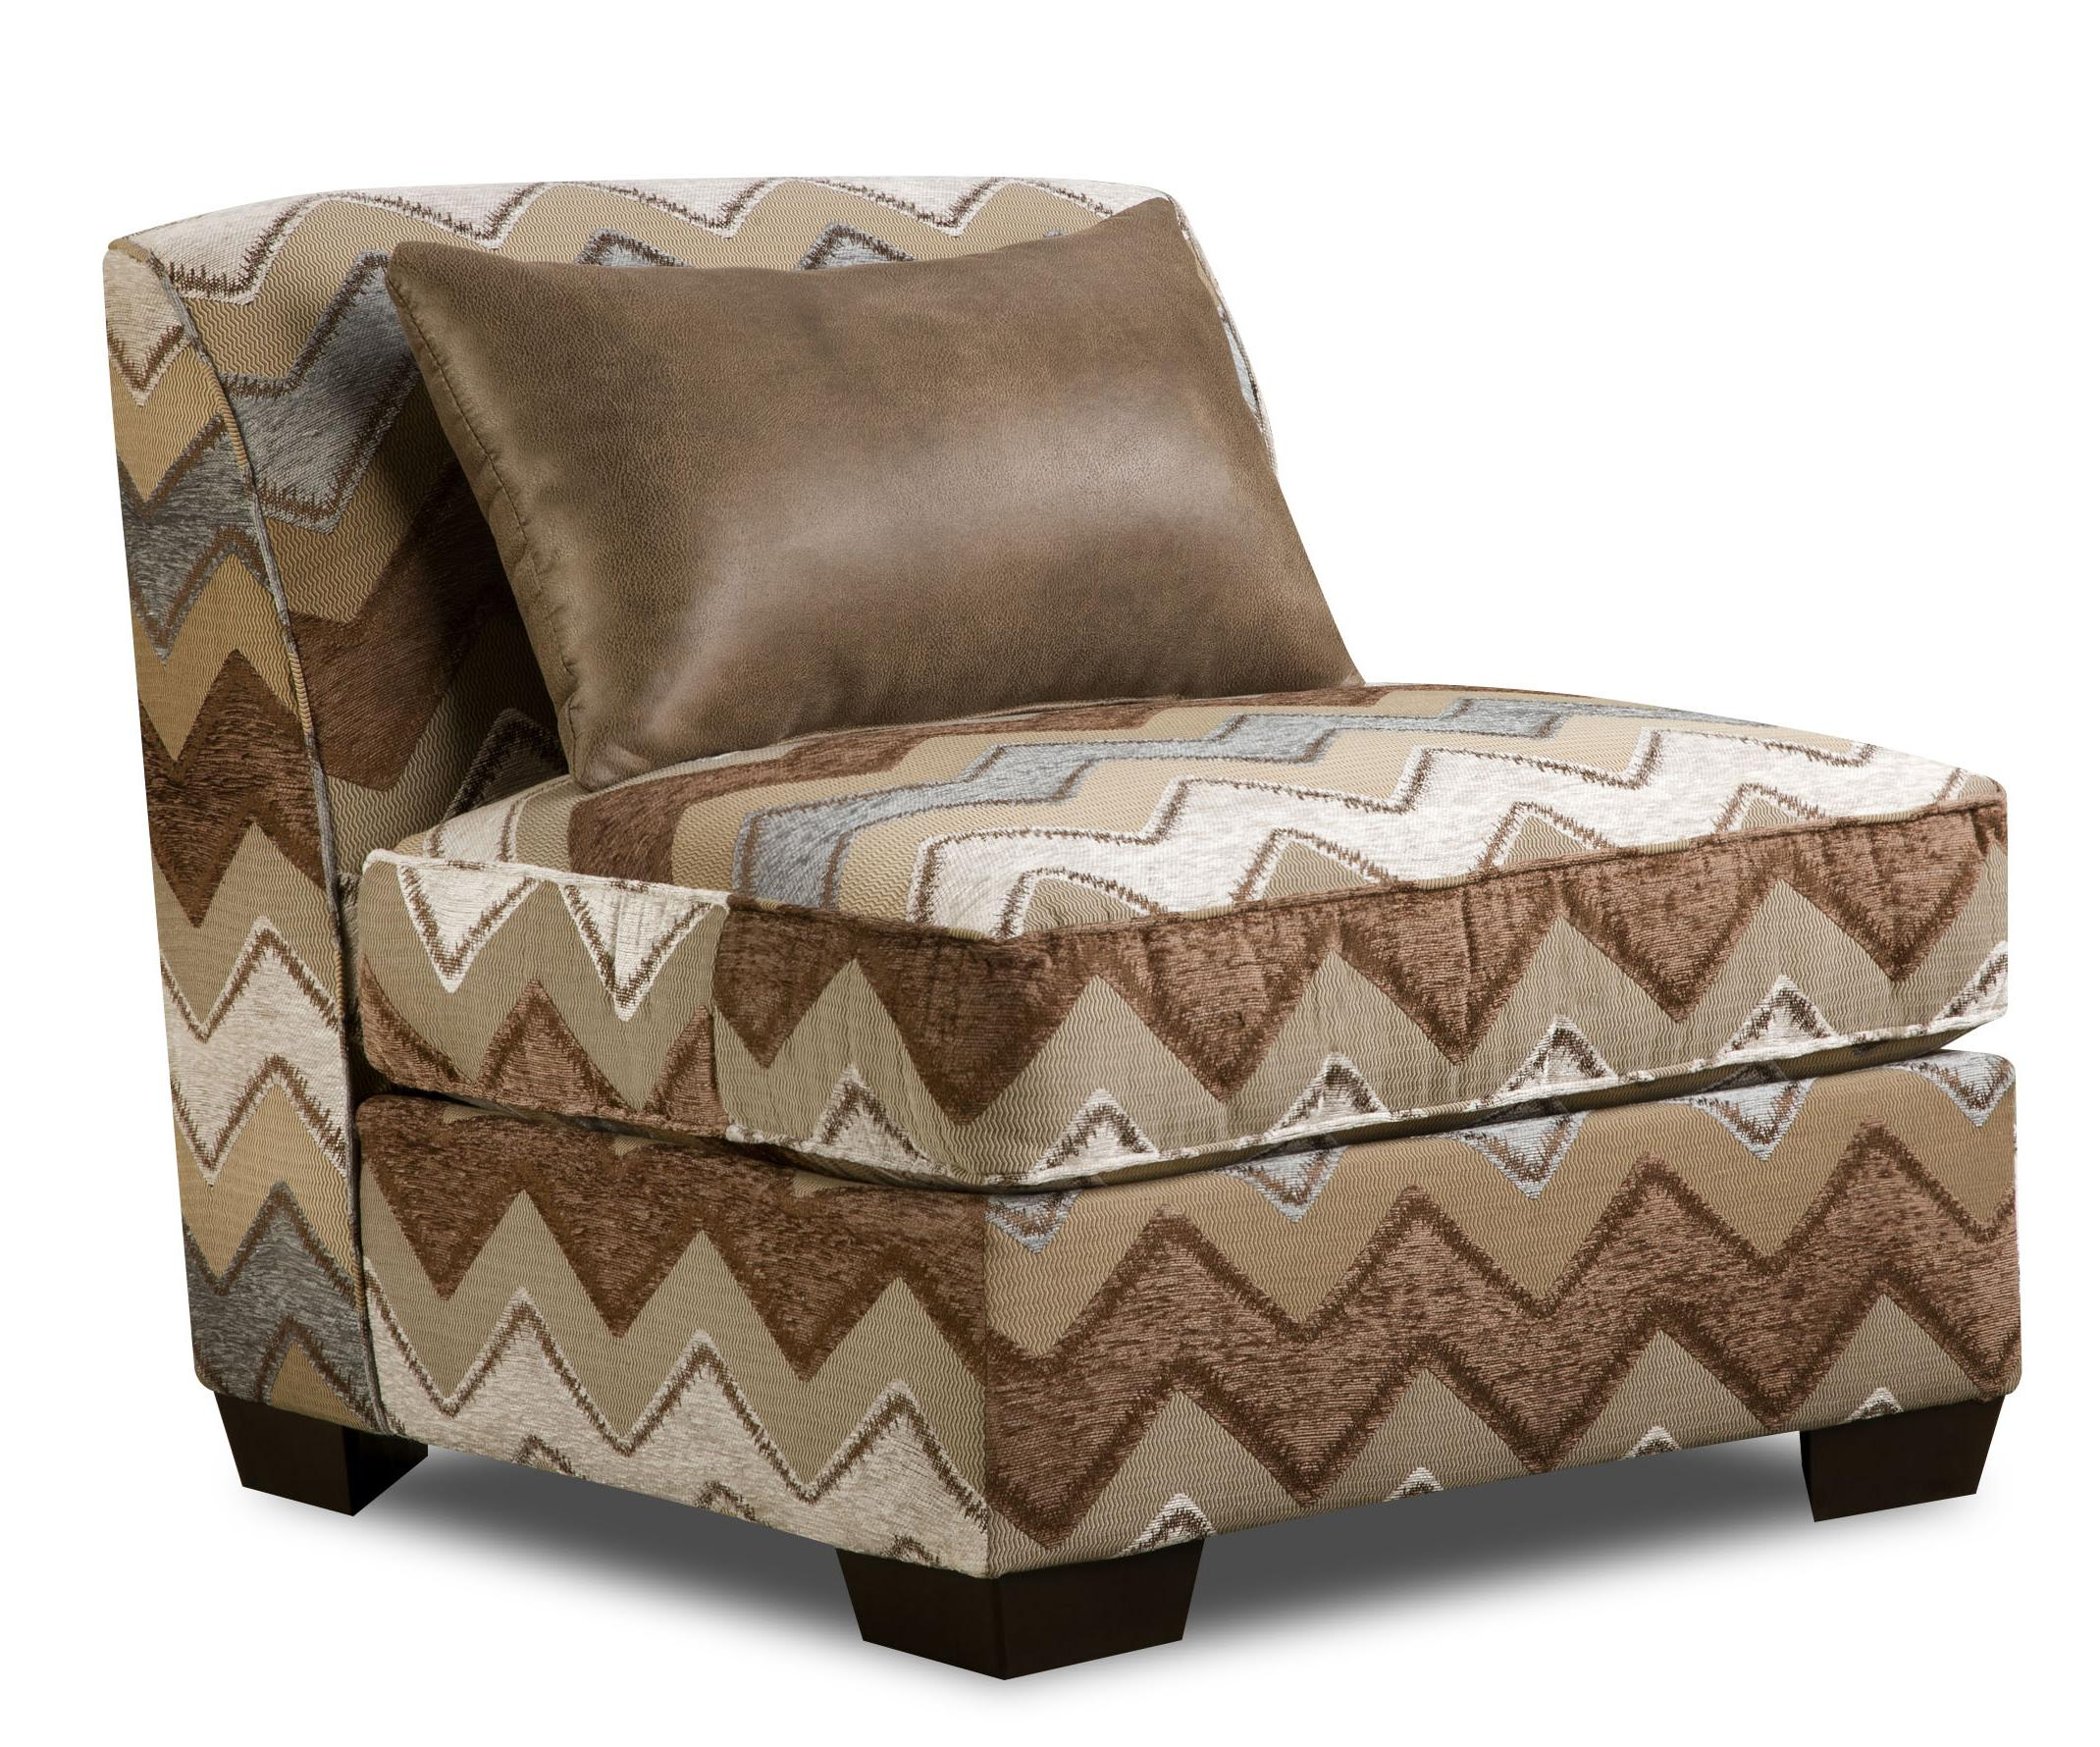 27A0 Armless Slipper Chair by Corinthian at Story & Lee Furniture